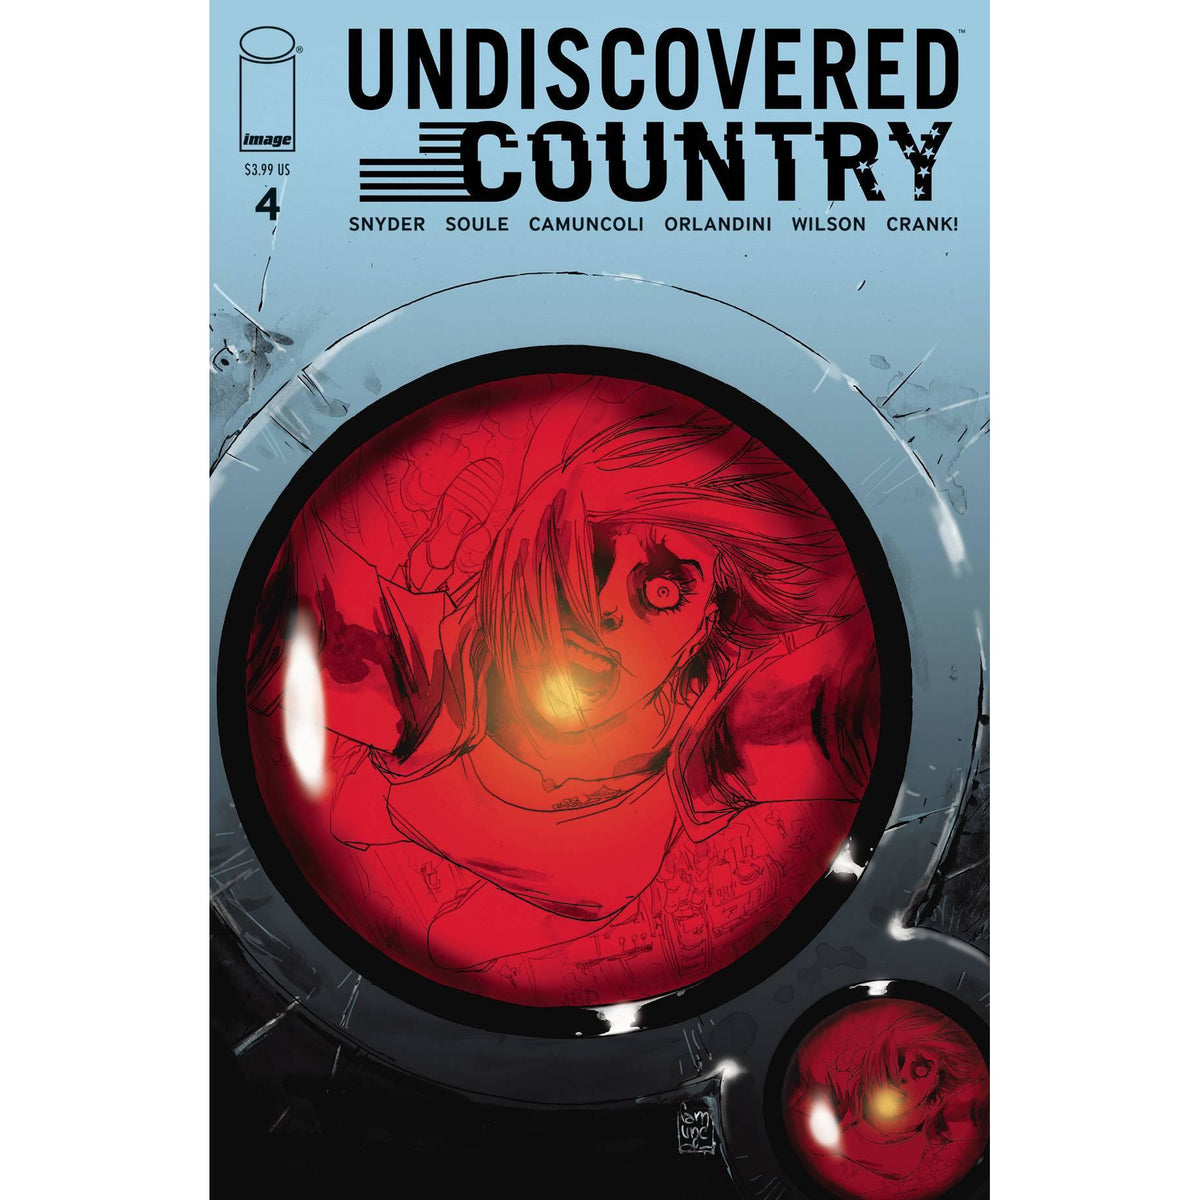 UNDISCOVERED COUNTRY #4 - CAMUNCOLI COVER